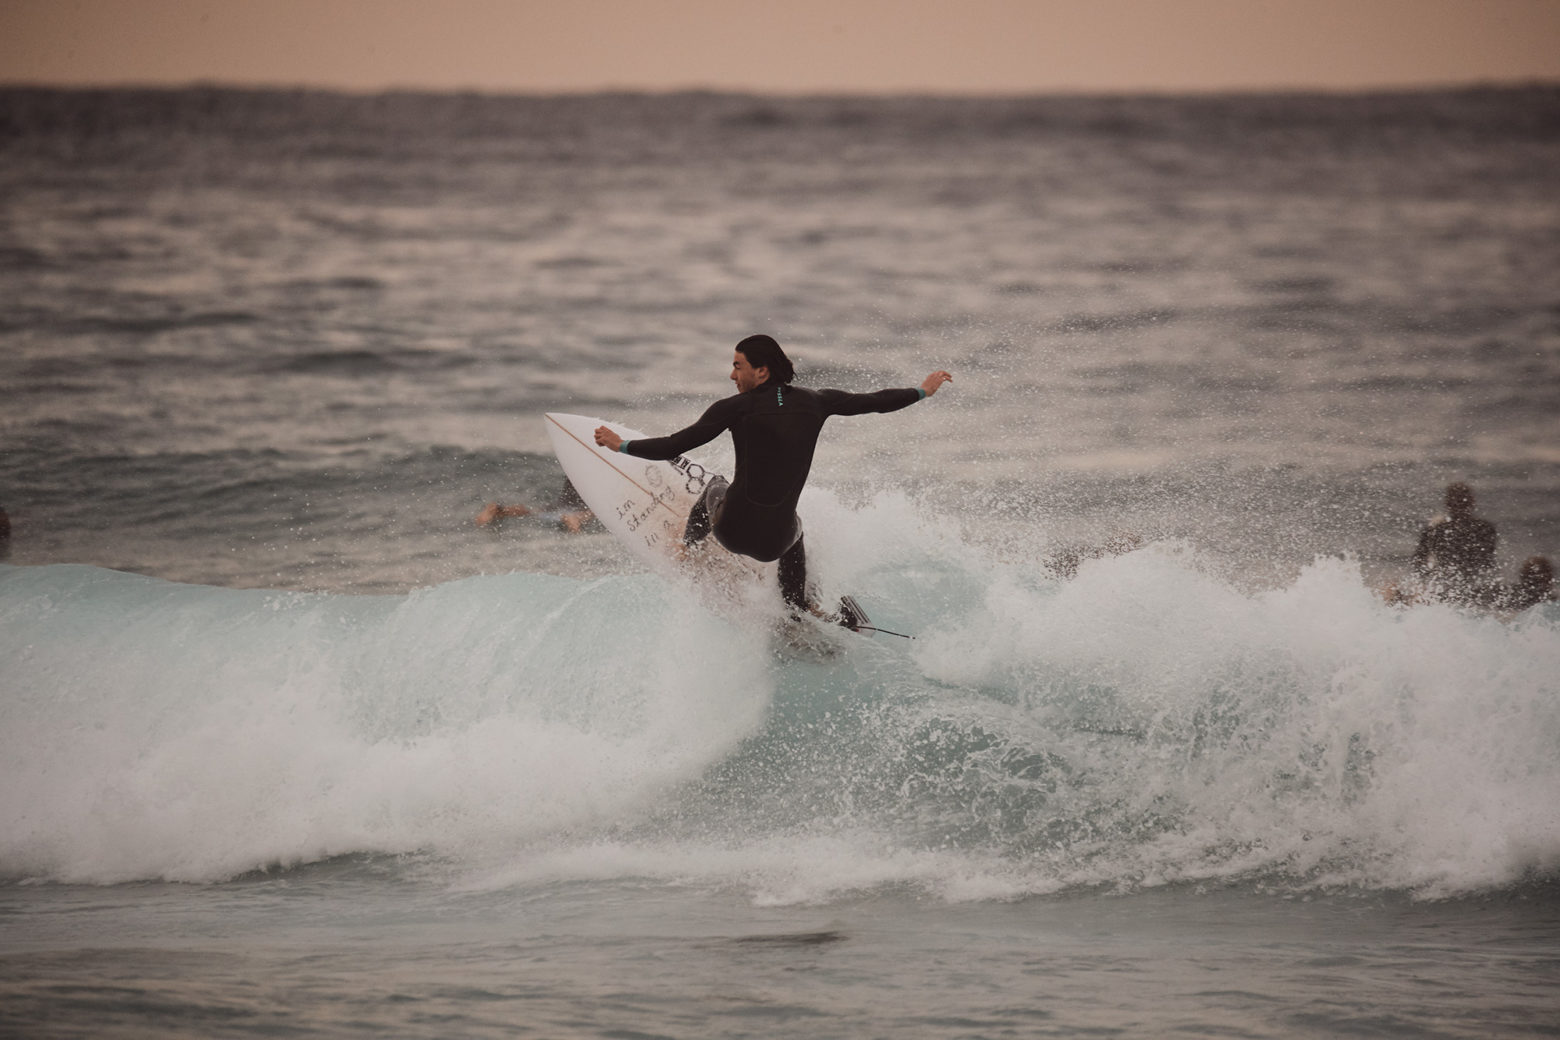 Few waves, nothing special